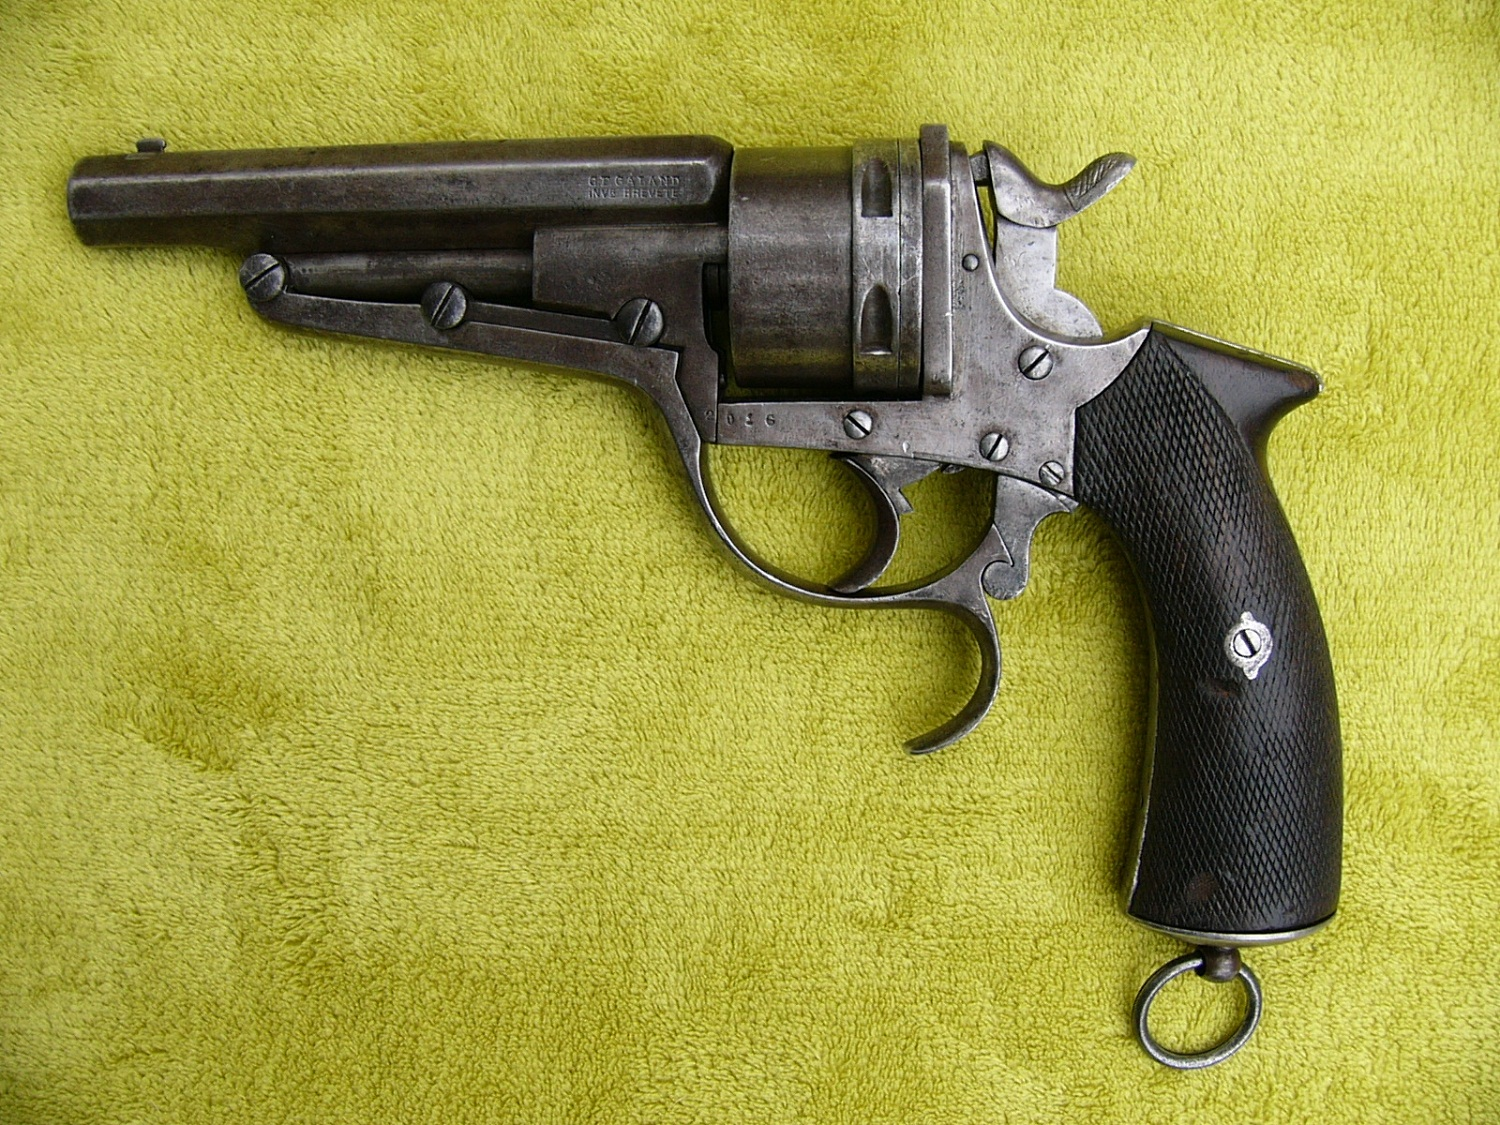 Galand Revolver for Russian border guards